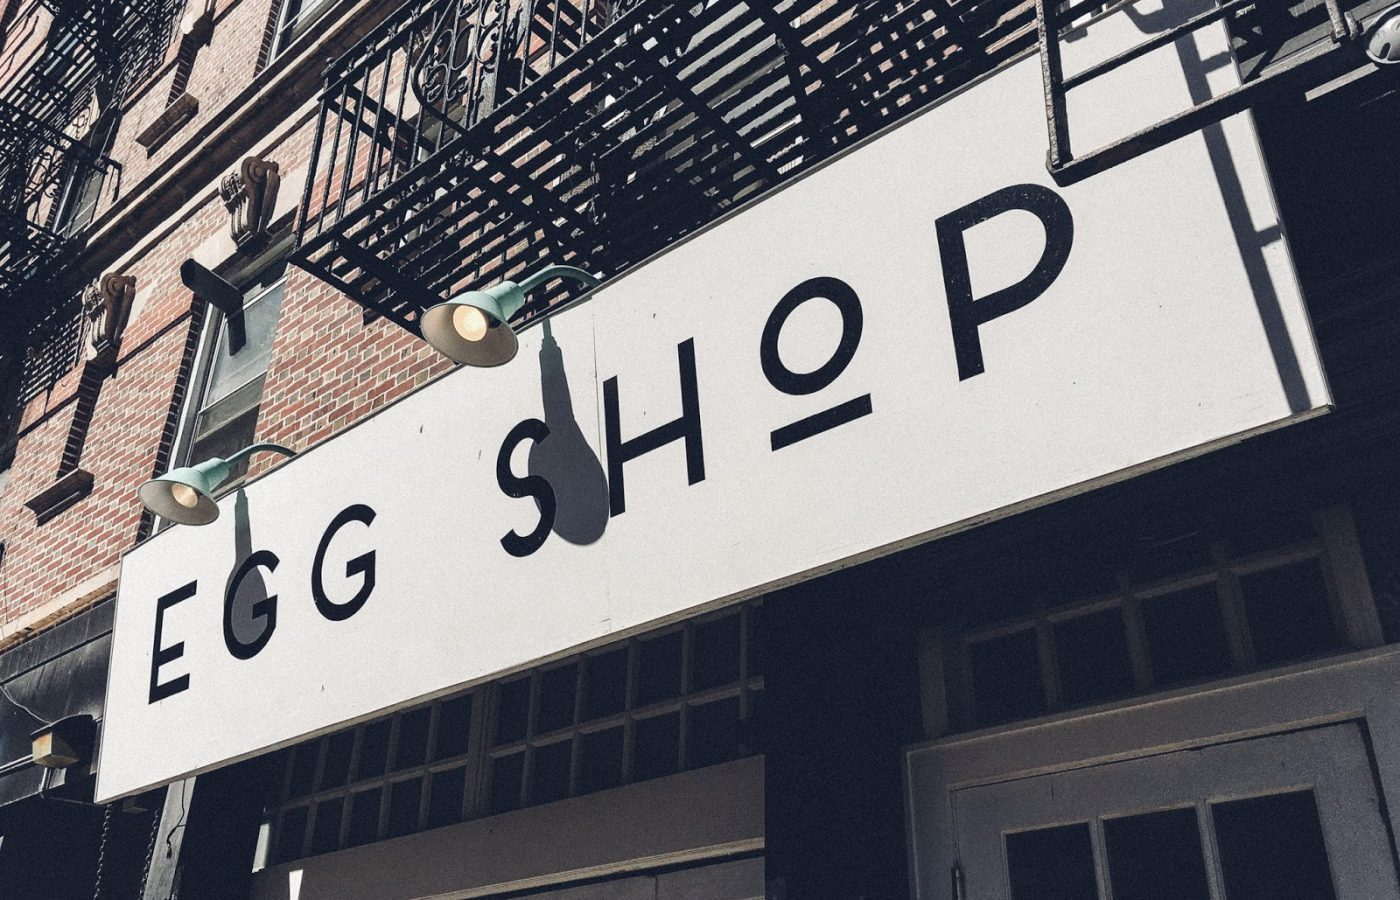 Egg Shop in New York